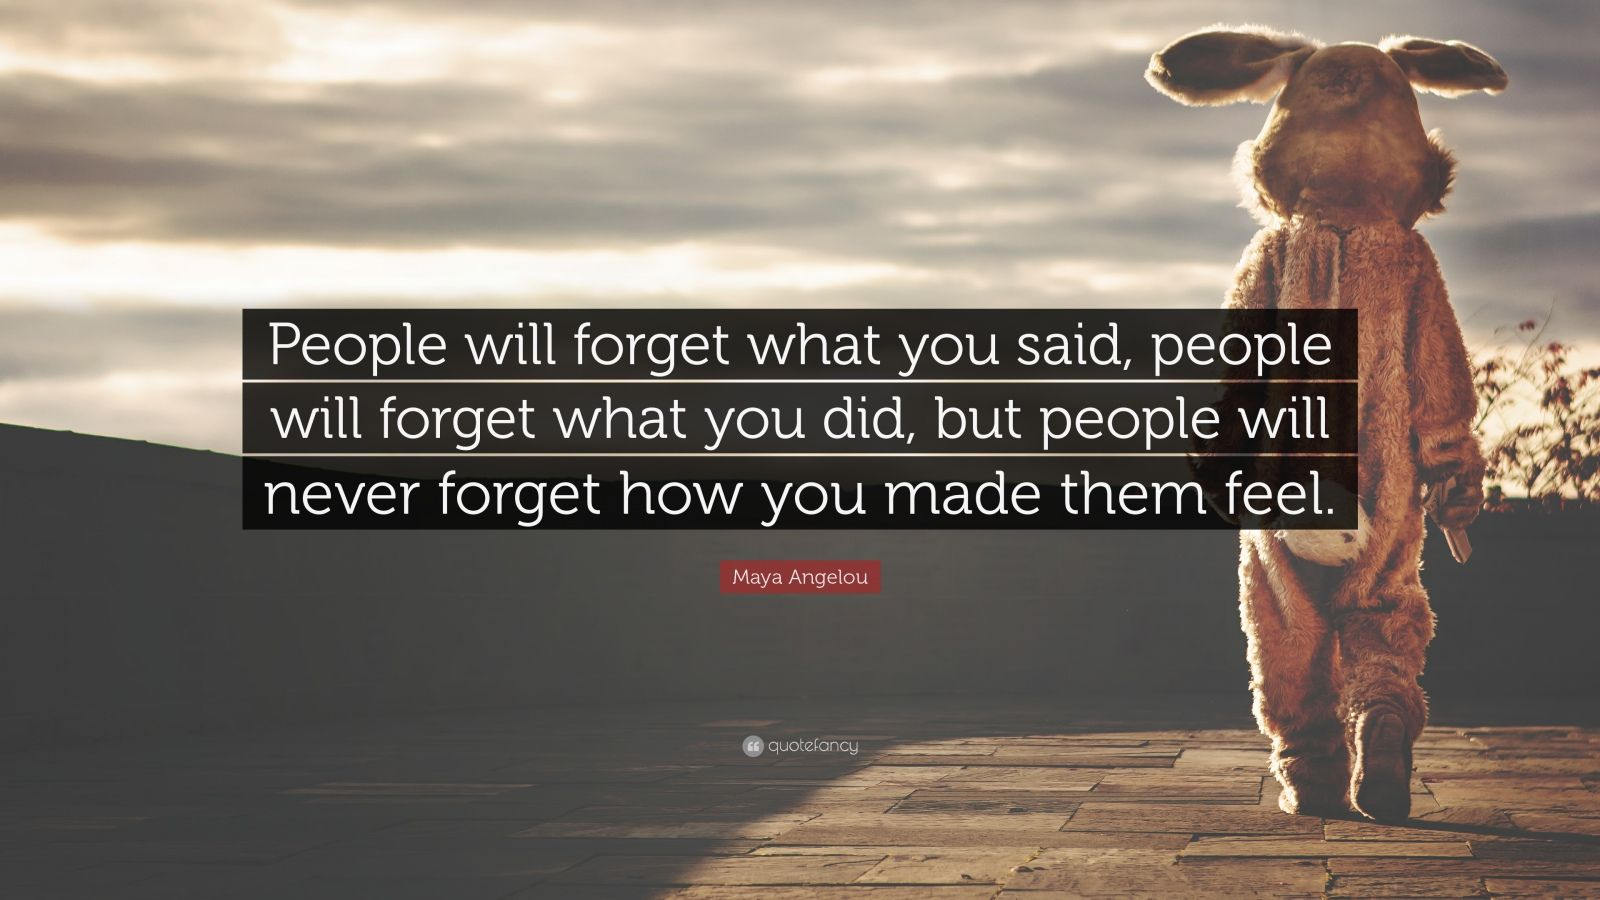 "Maya Angelou Quote: ""People will forget what you said, people will forget what you did, but people will never forget how you made them feel."""